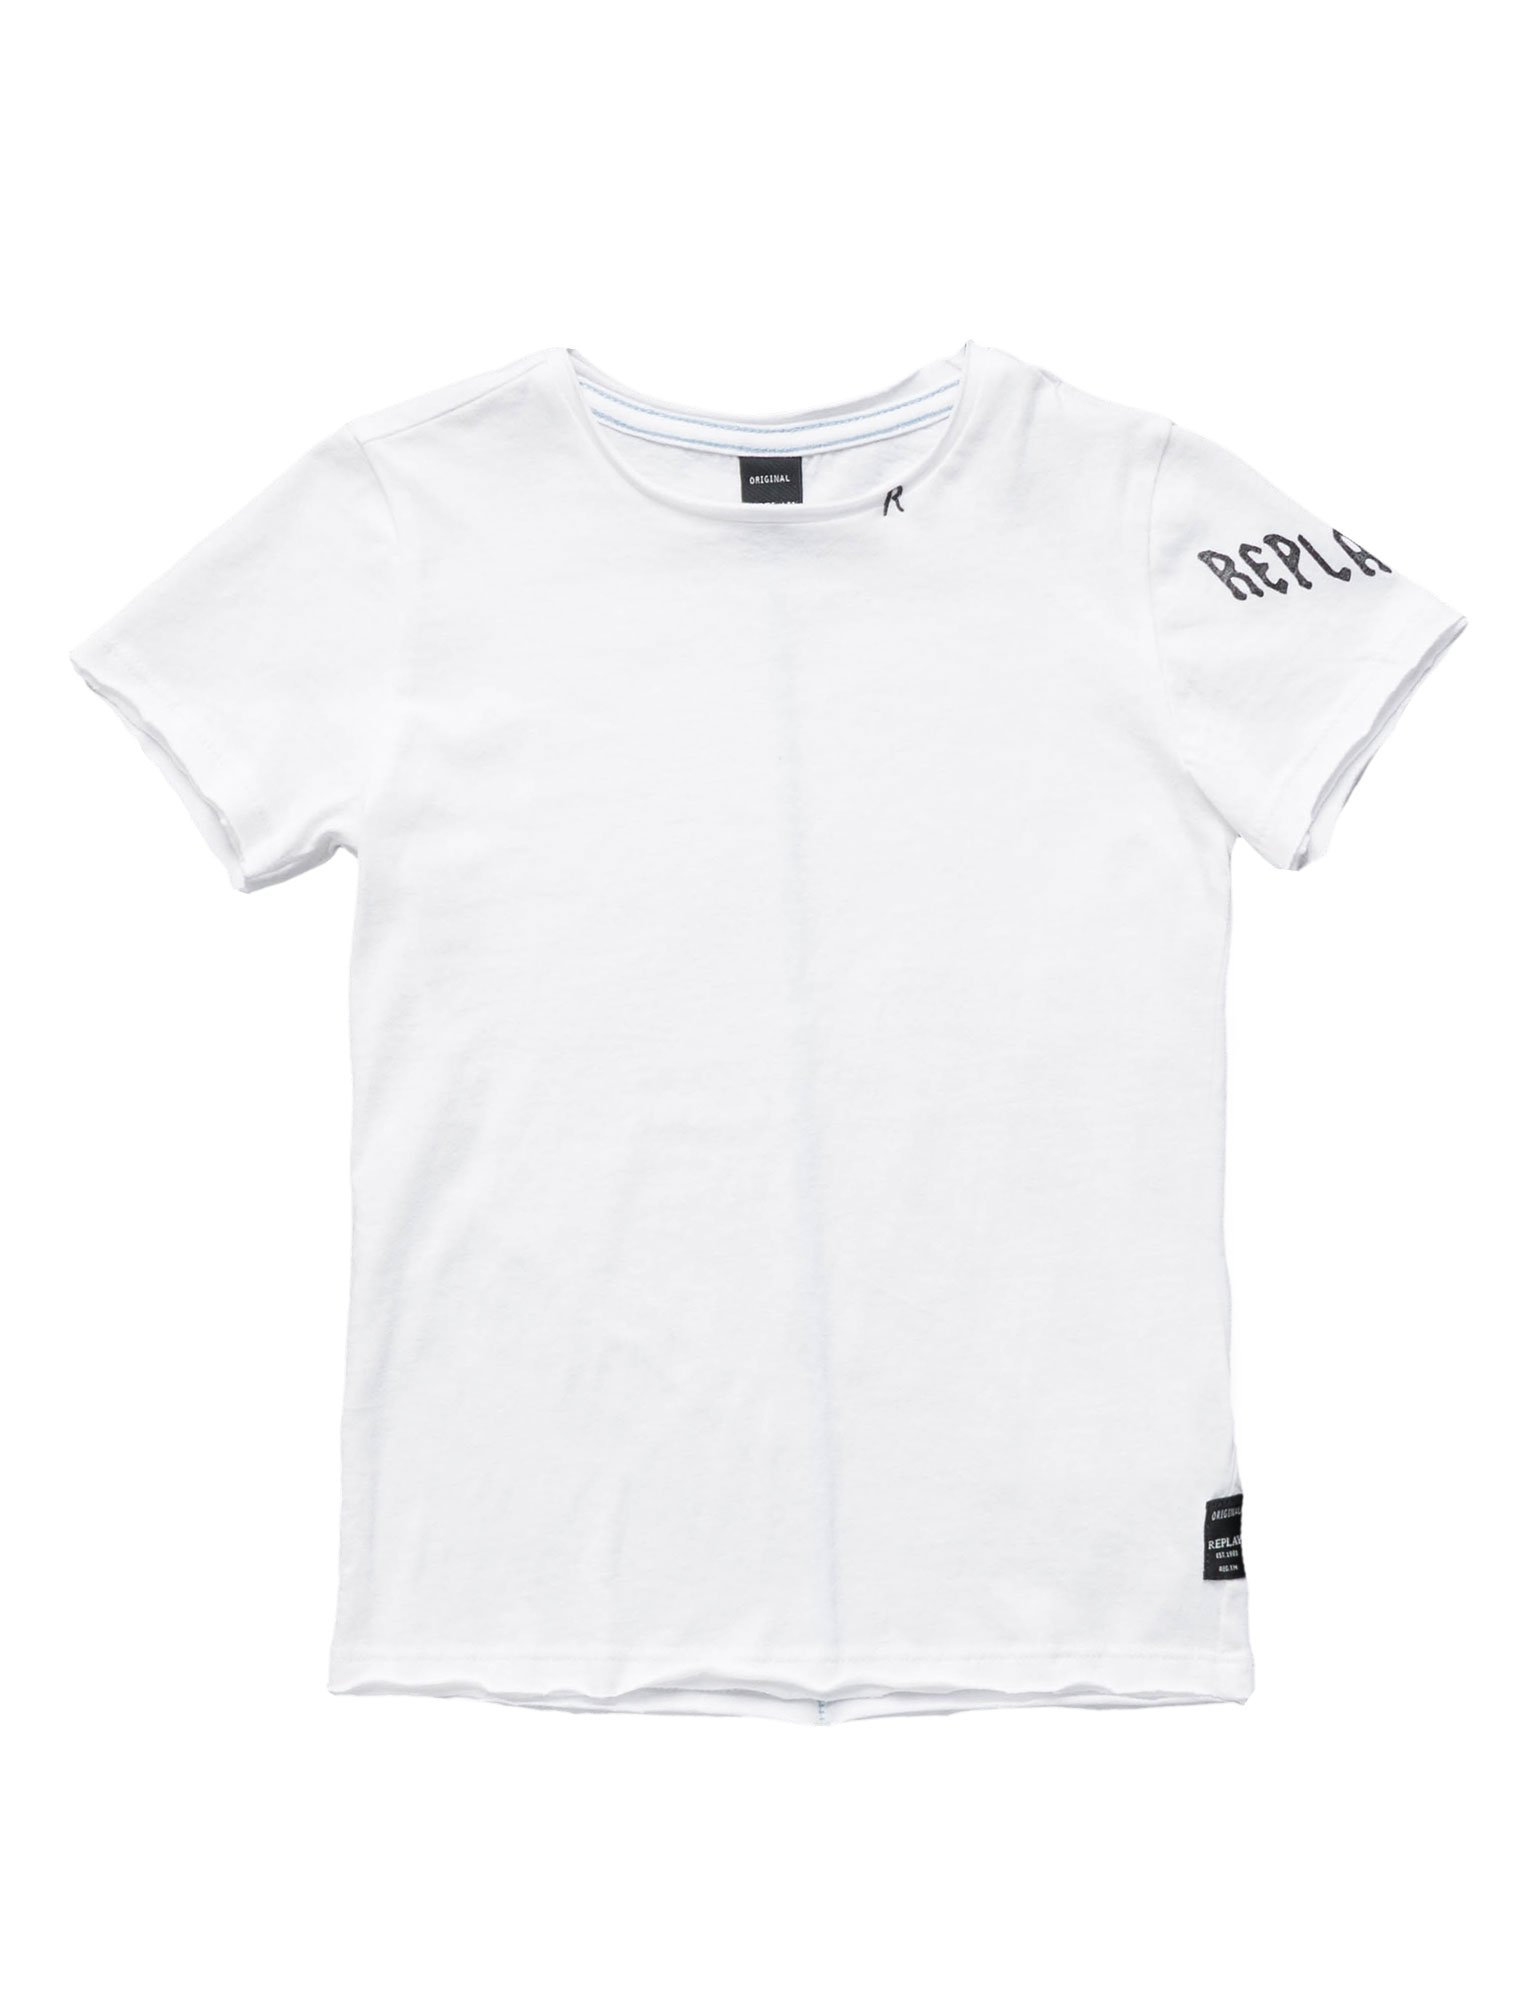 Replay Raw-Edge Jersey Boy's T-Shirt In White In Size 10 Years White